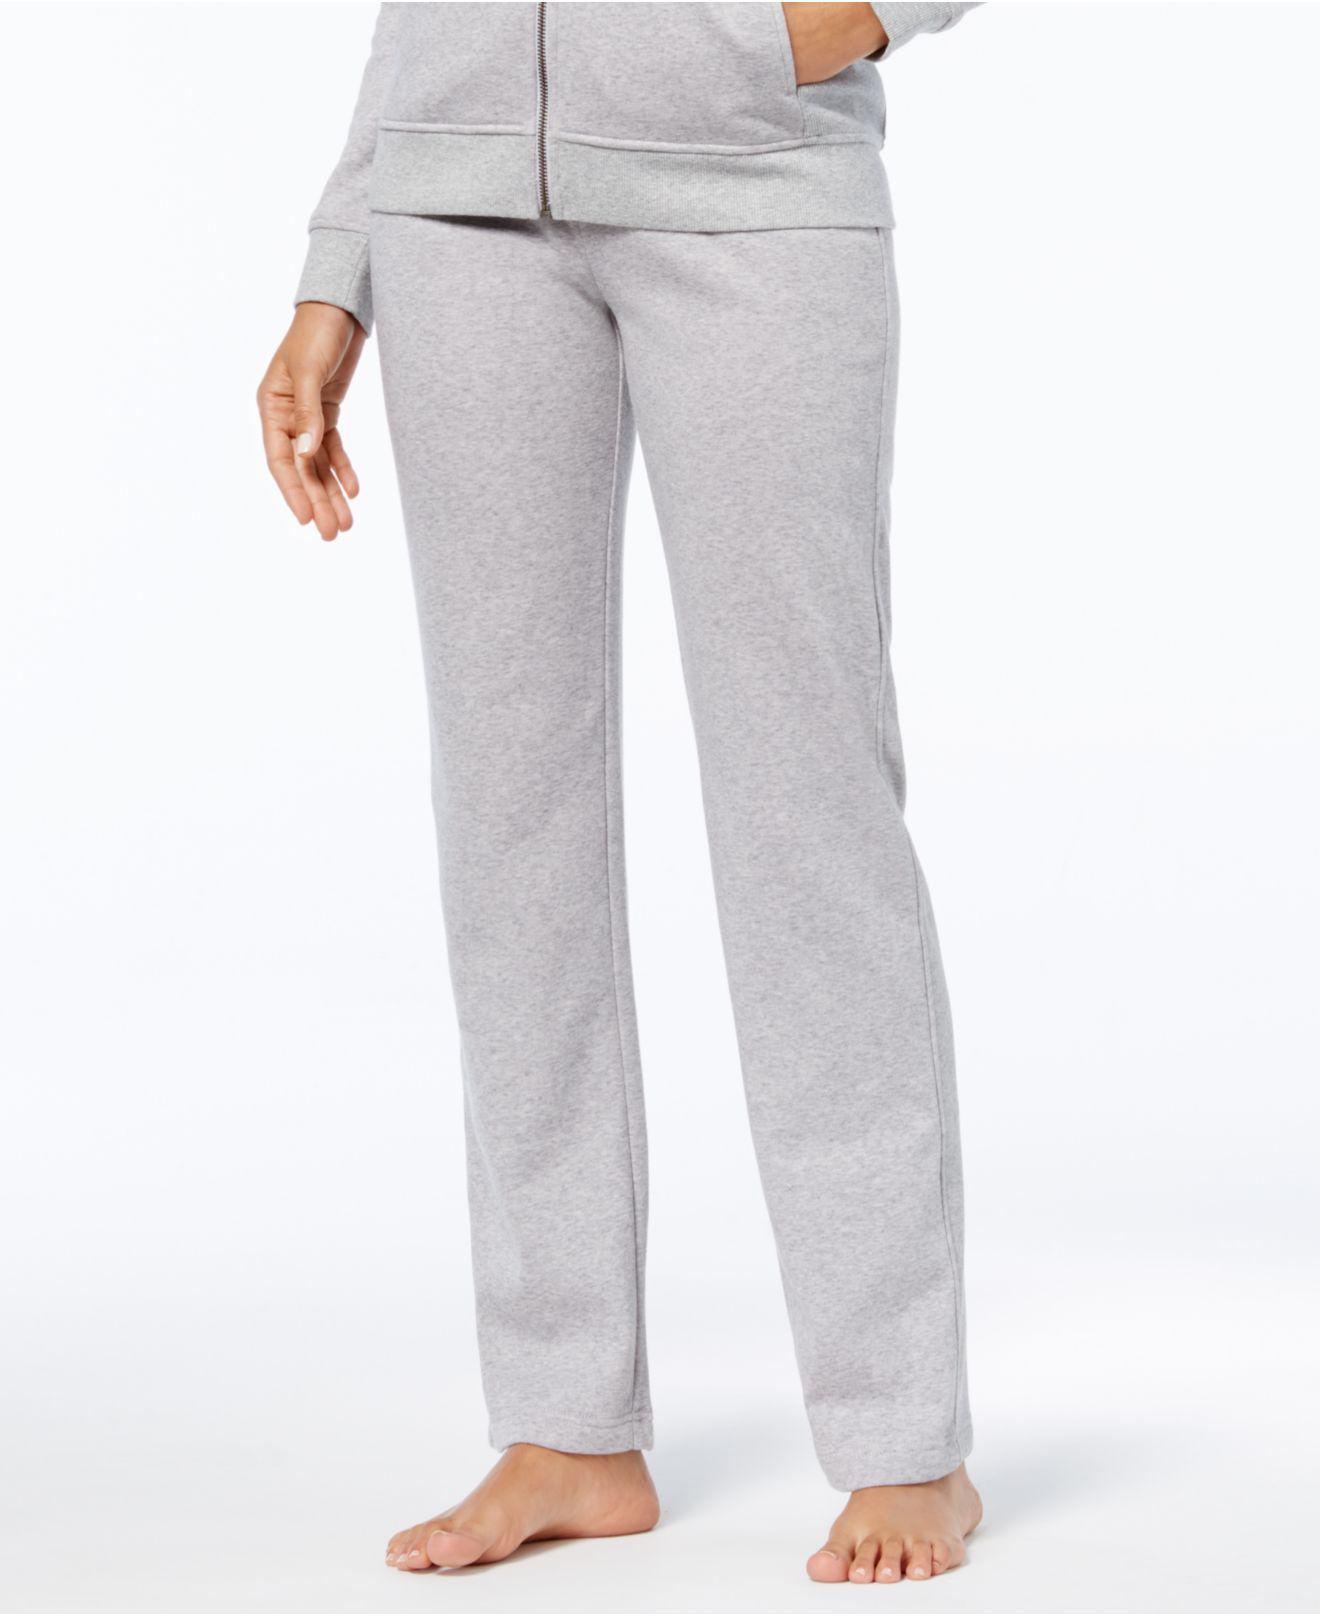 Lyst - UGG Penny Solid Fleece Pajama Pants in Gray 27ccd2309